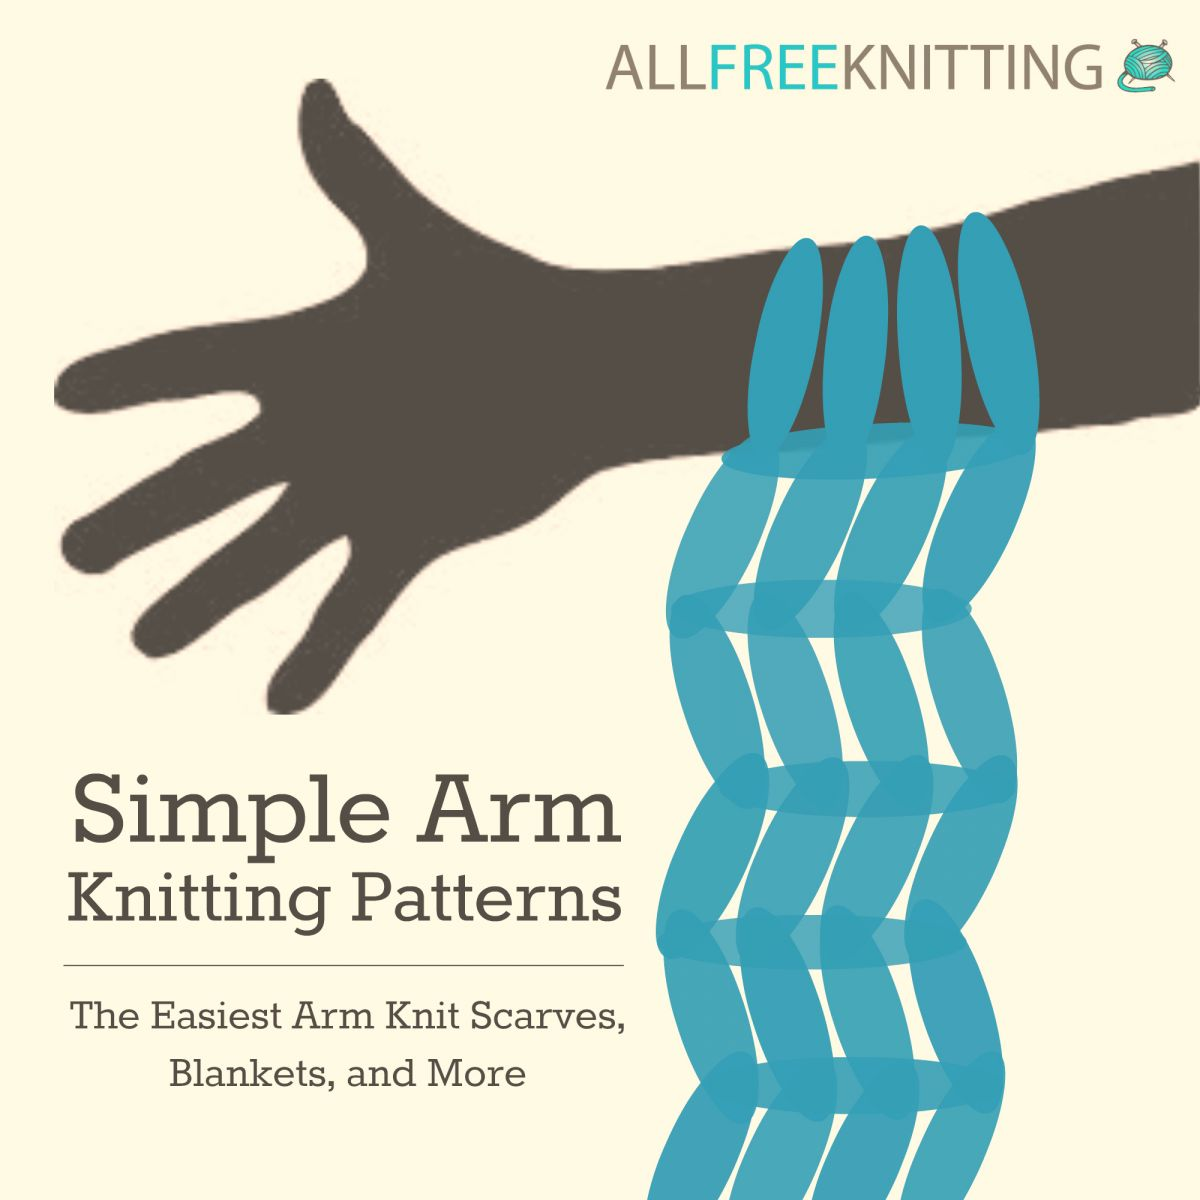 Knitting With Your Arms Instructions : Arm knitting instructions party invitations ideas